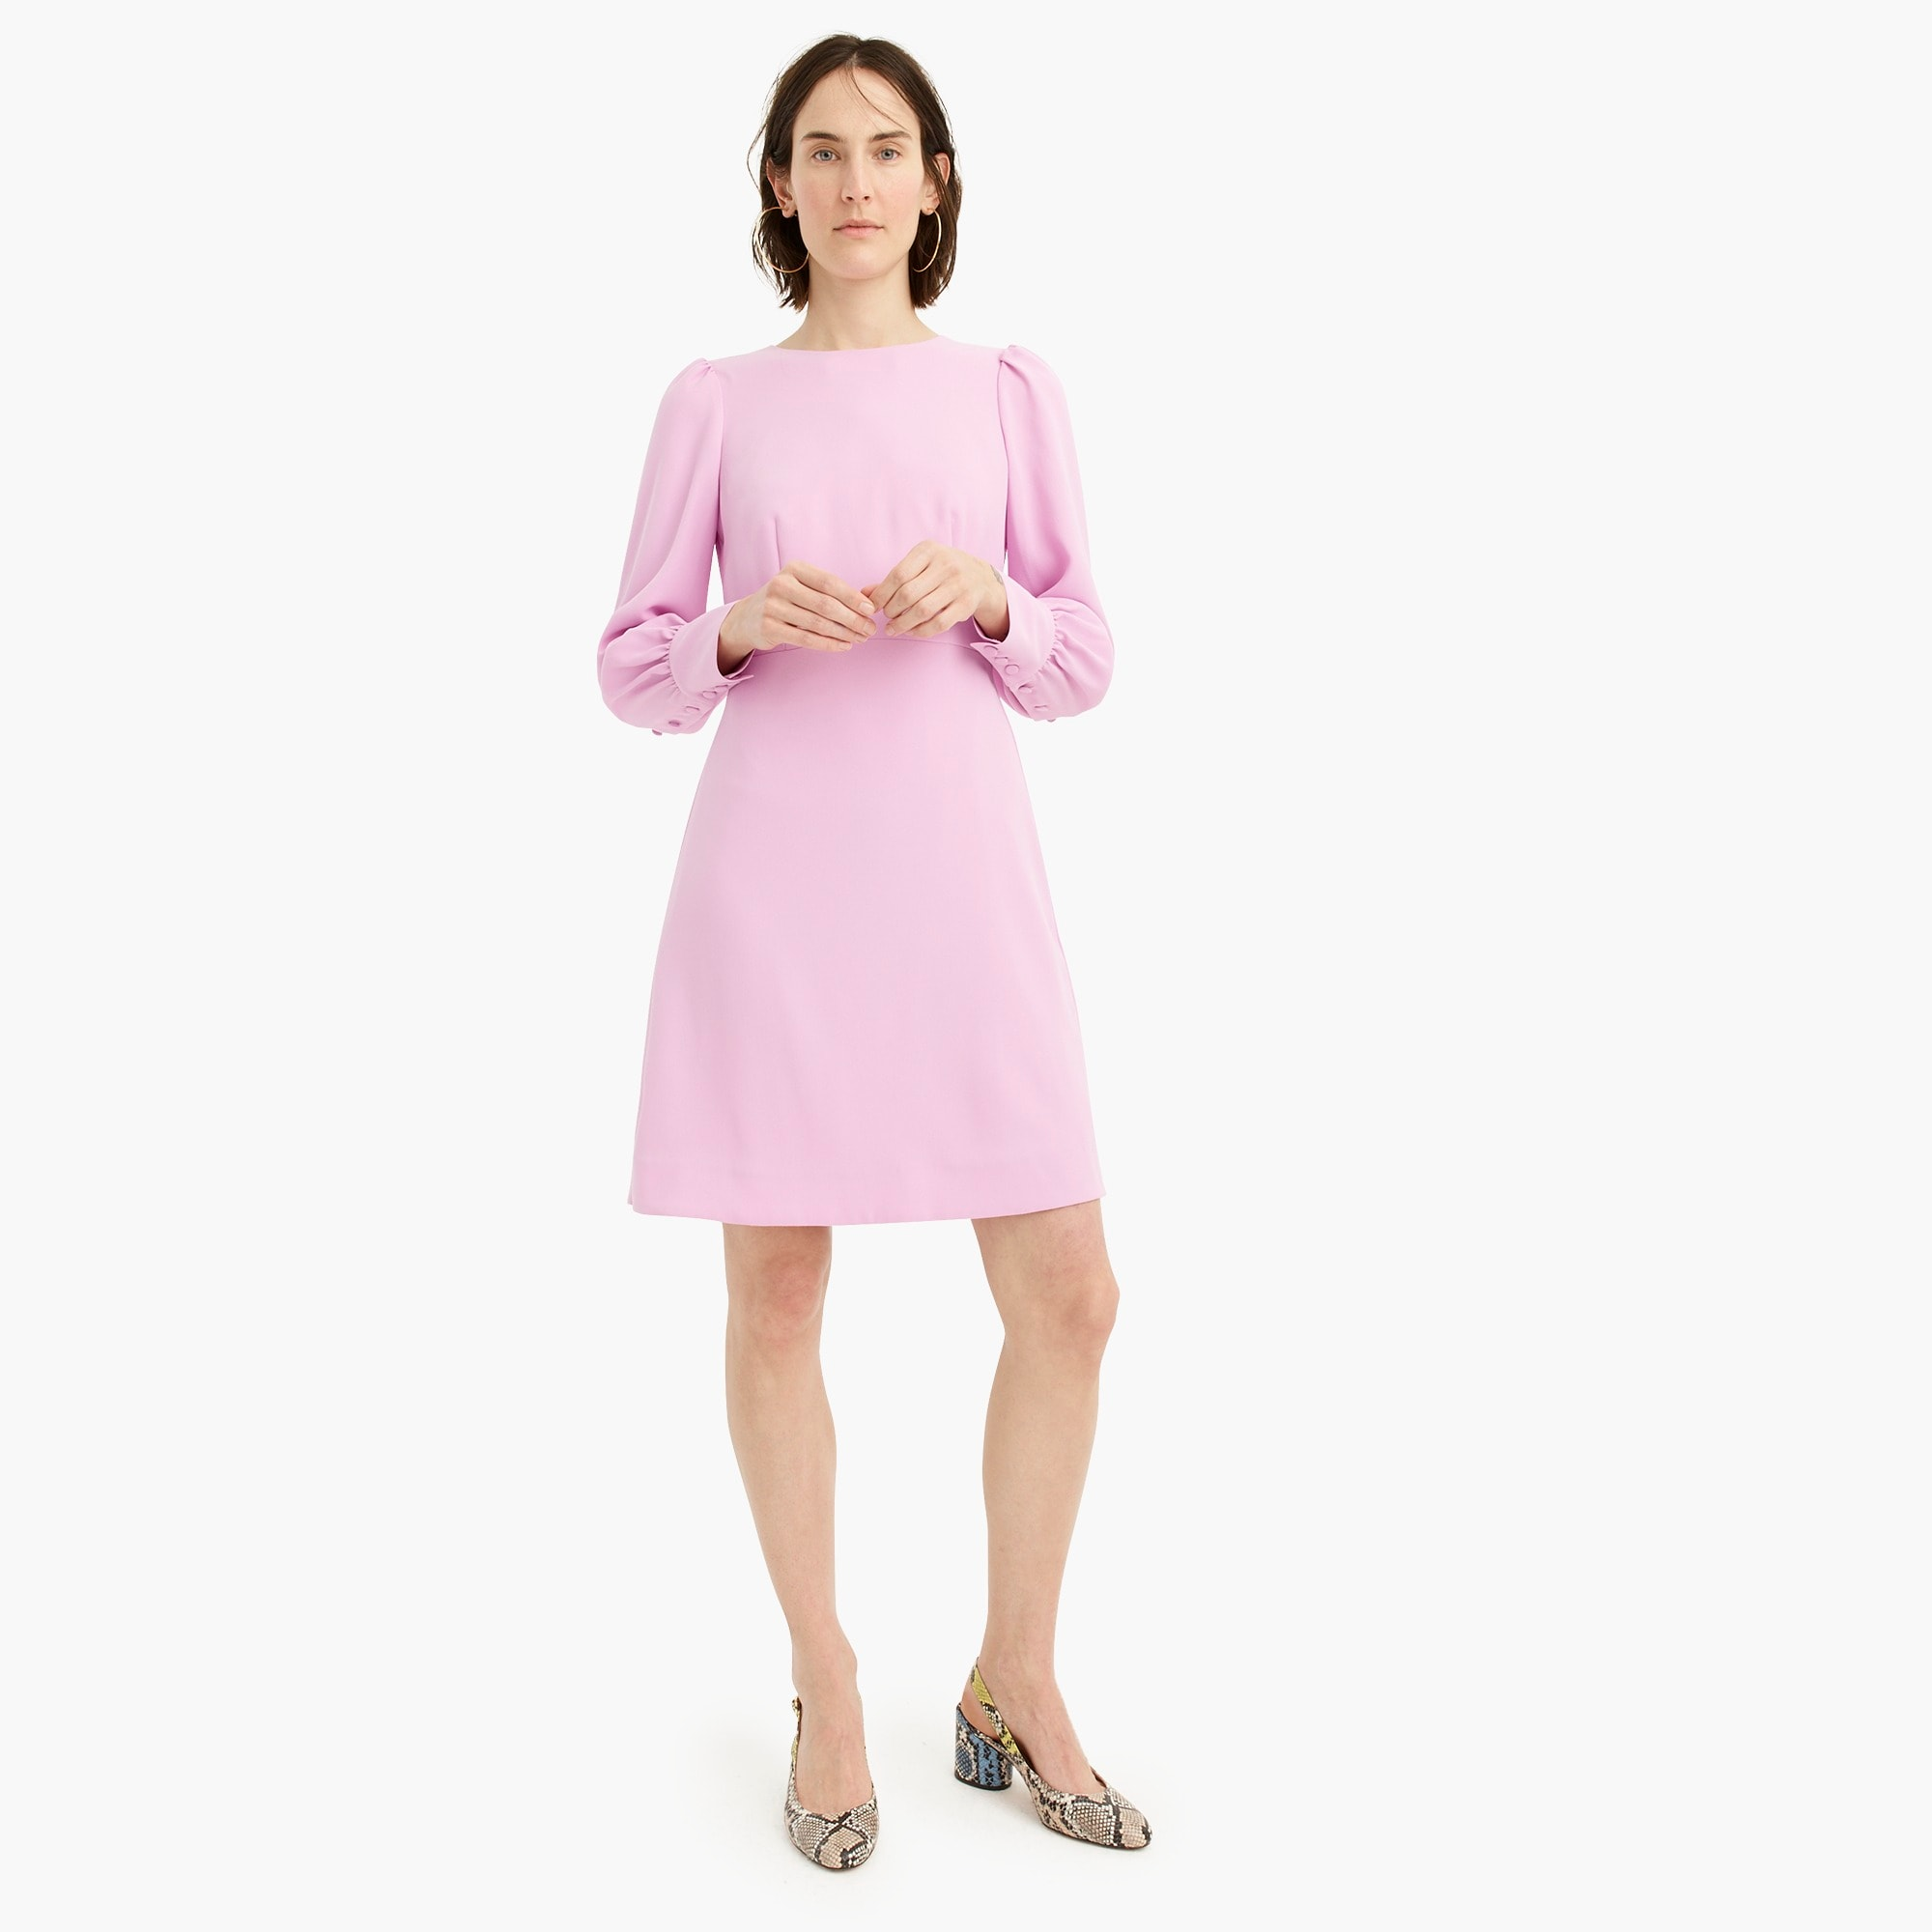 womens Long-sleeve dress in everyday crepe